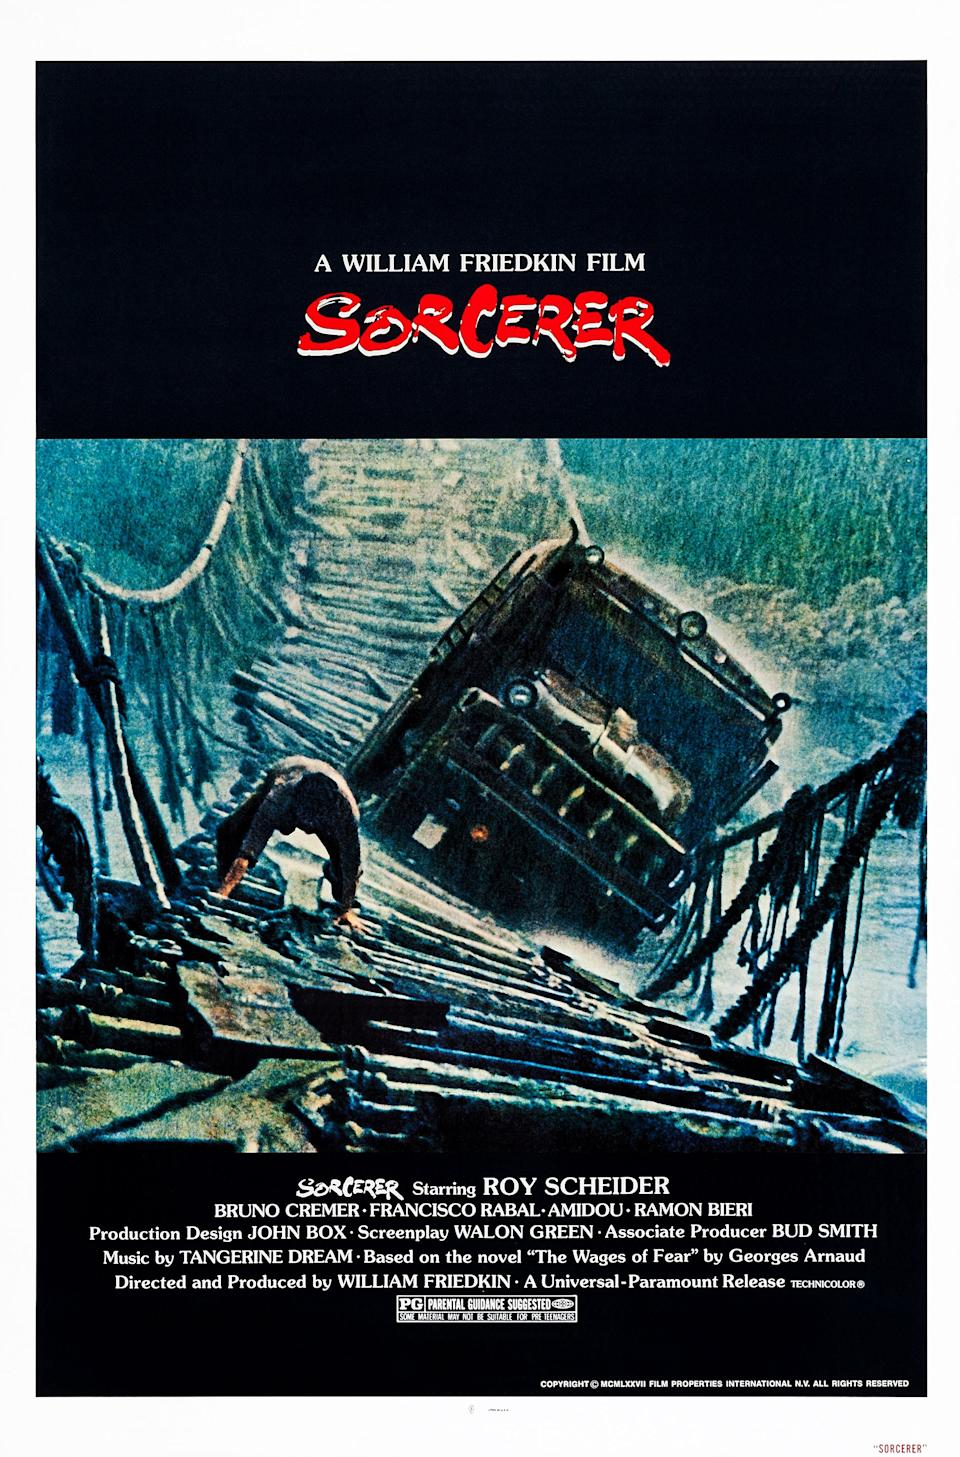 Sorcerer, poster, US poster art, 1977. (Photo by LMPC via Getty Images)